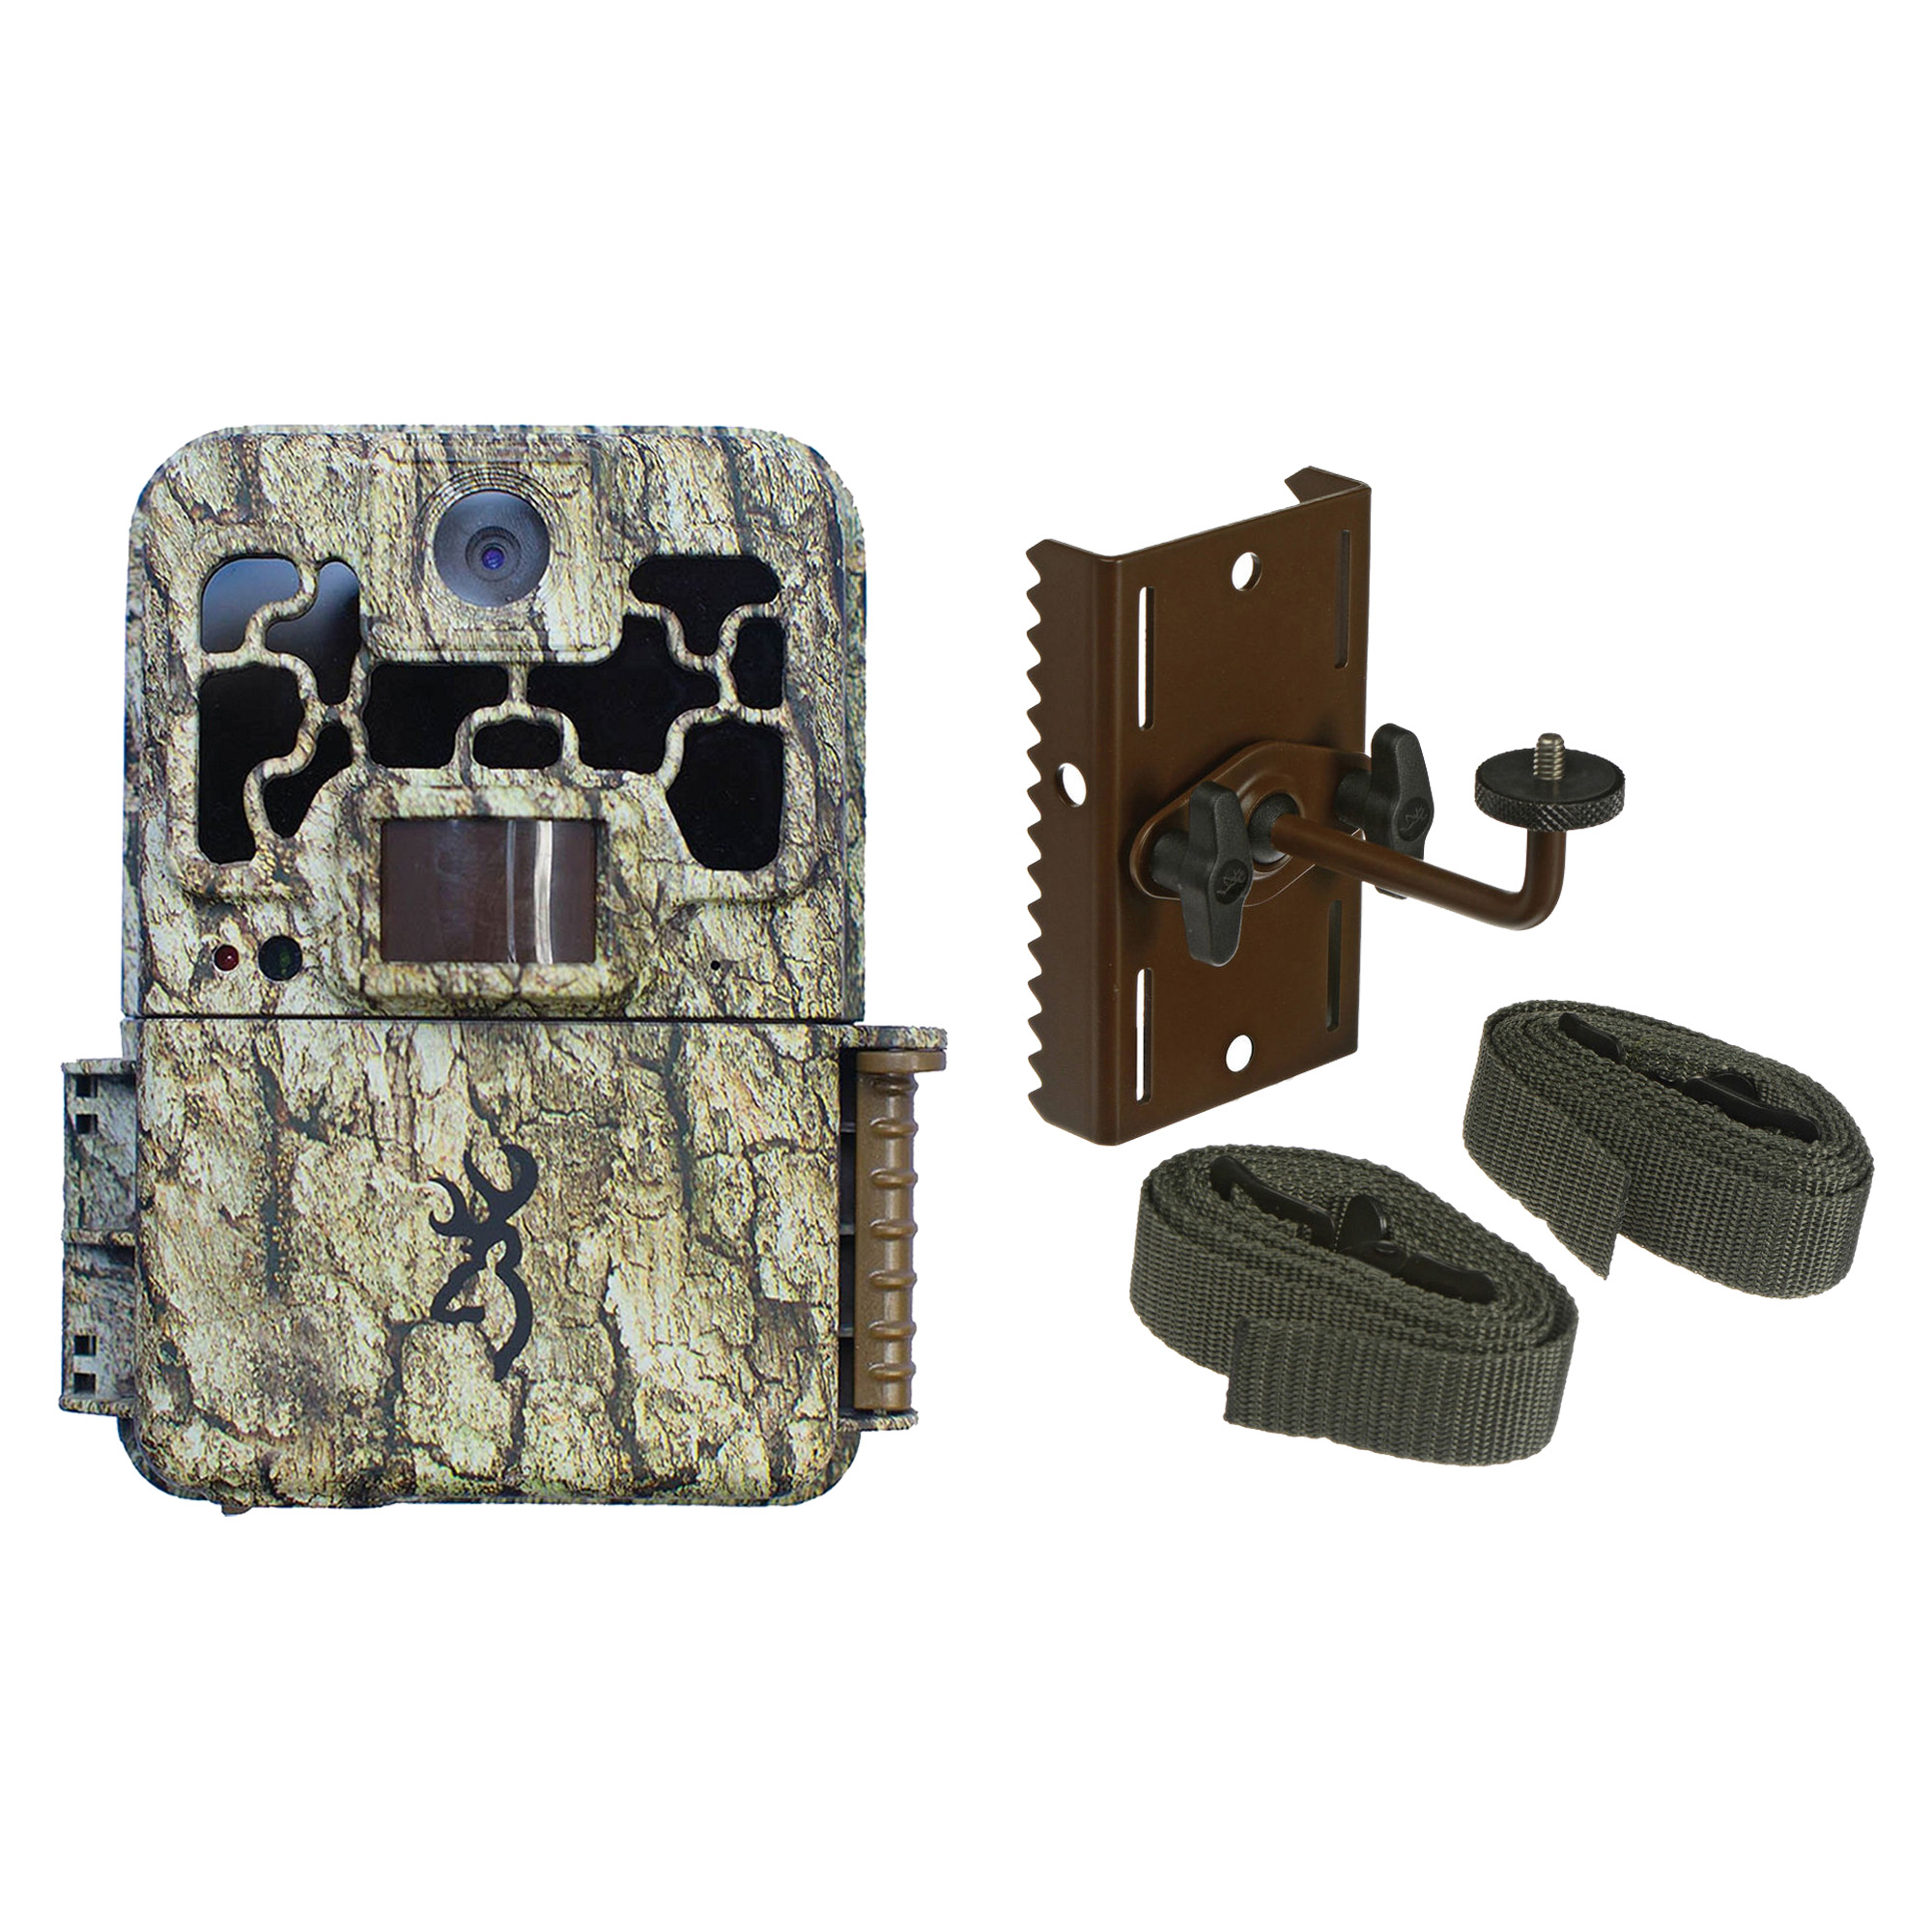 Browning Trail Cameras Spec Ops 10MP FHD Video Game Camera + Gimbal Tree Mount by Browning Trail Cameras